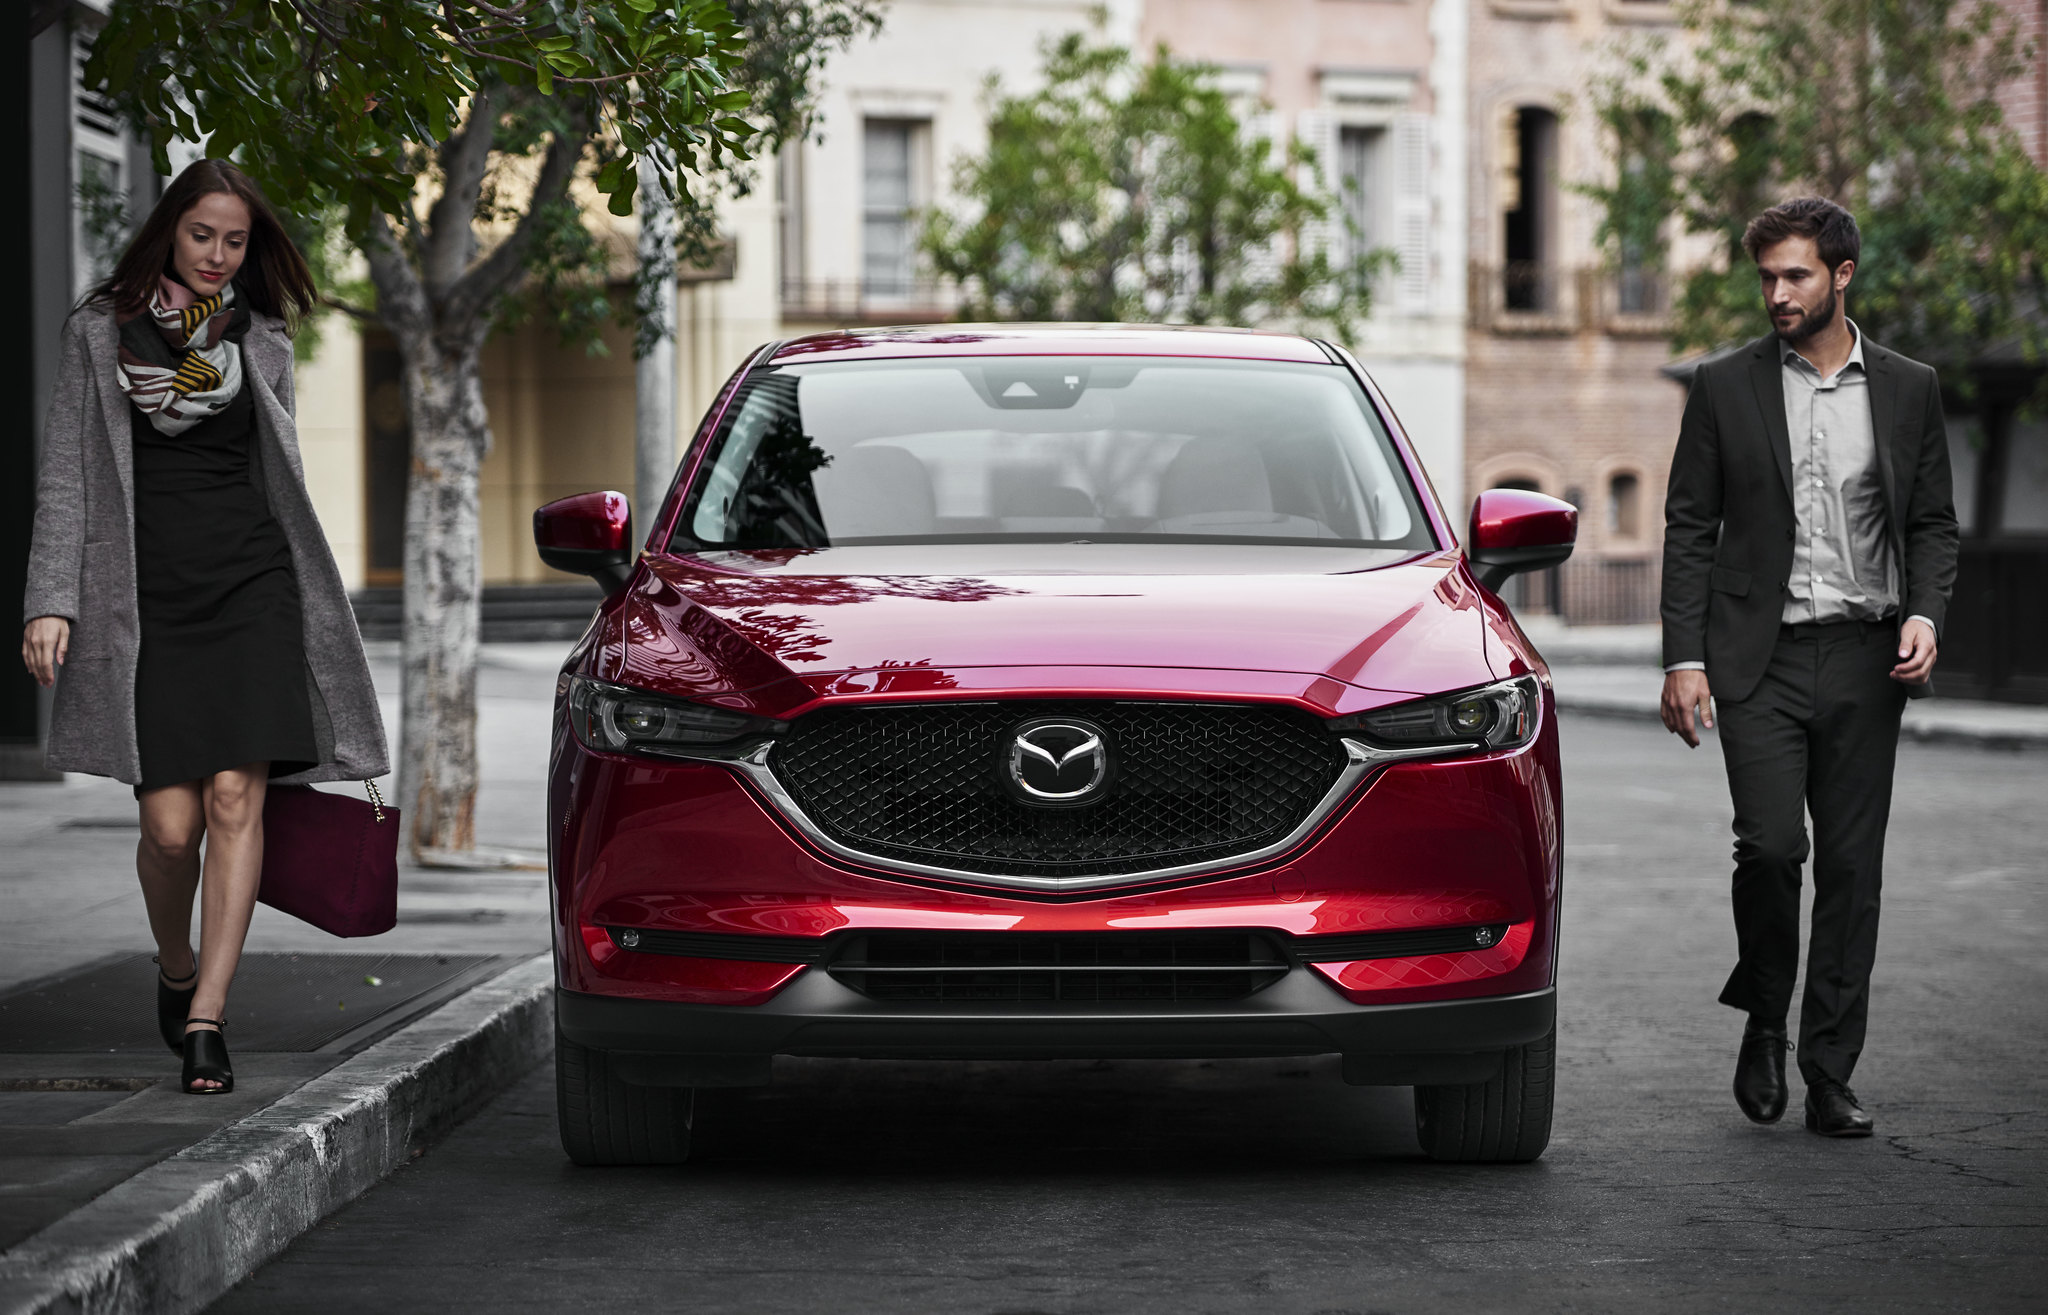 This is the 2017 Mazda CX-5